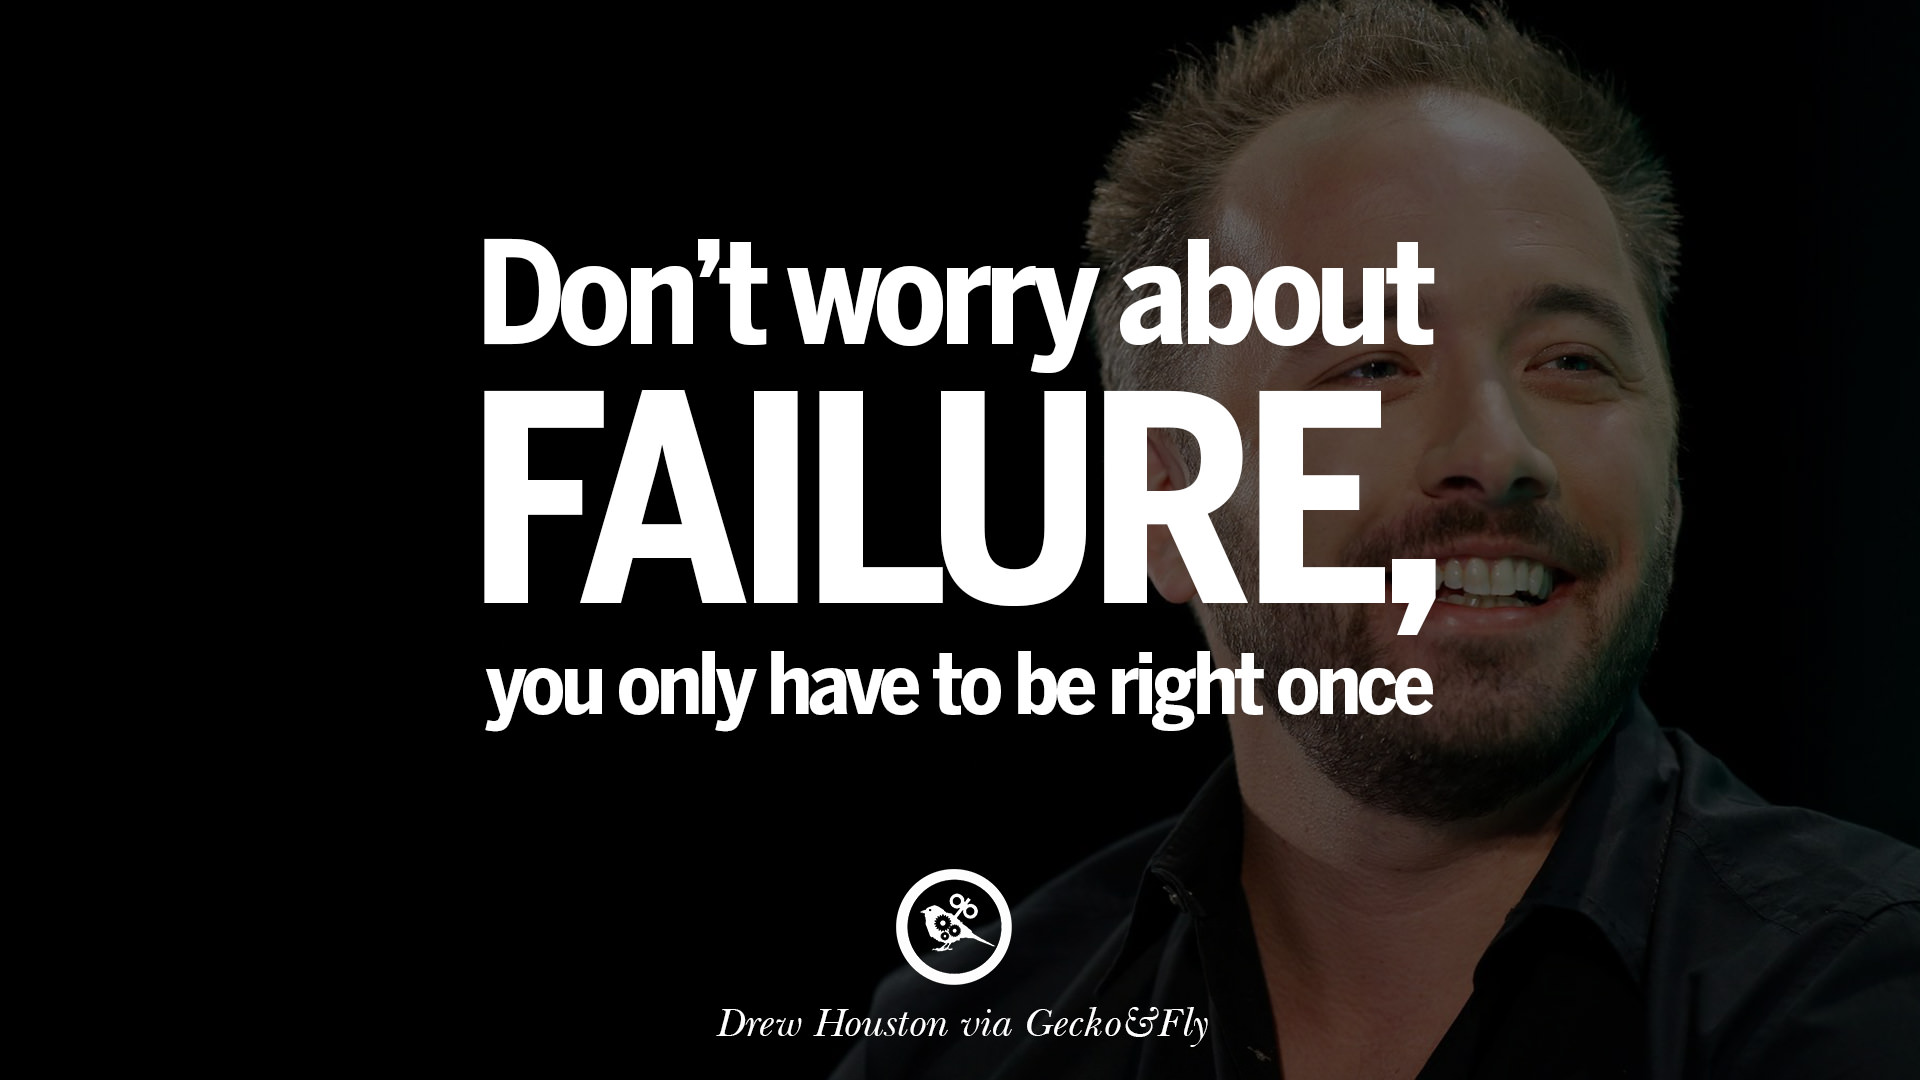 inspirational-smll-business-quotes9.jpg